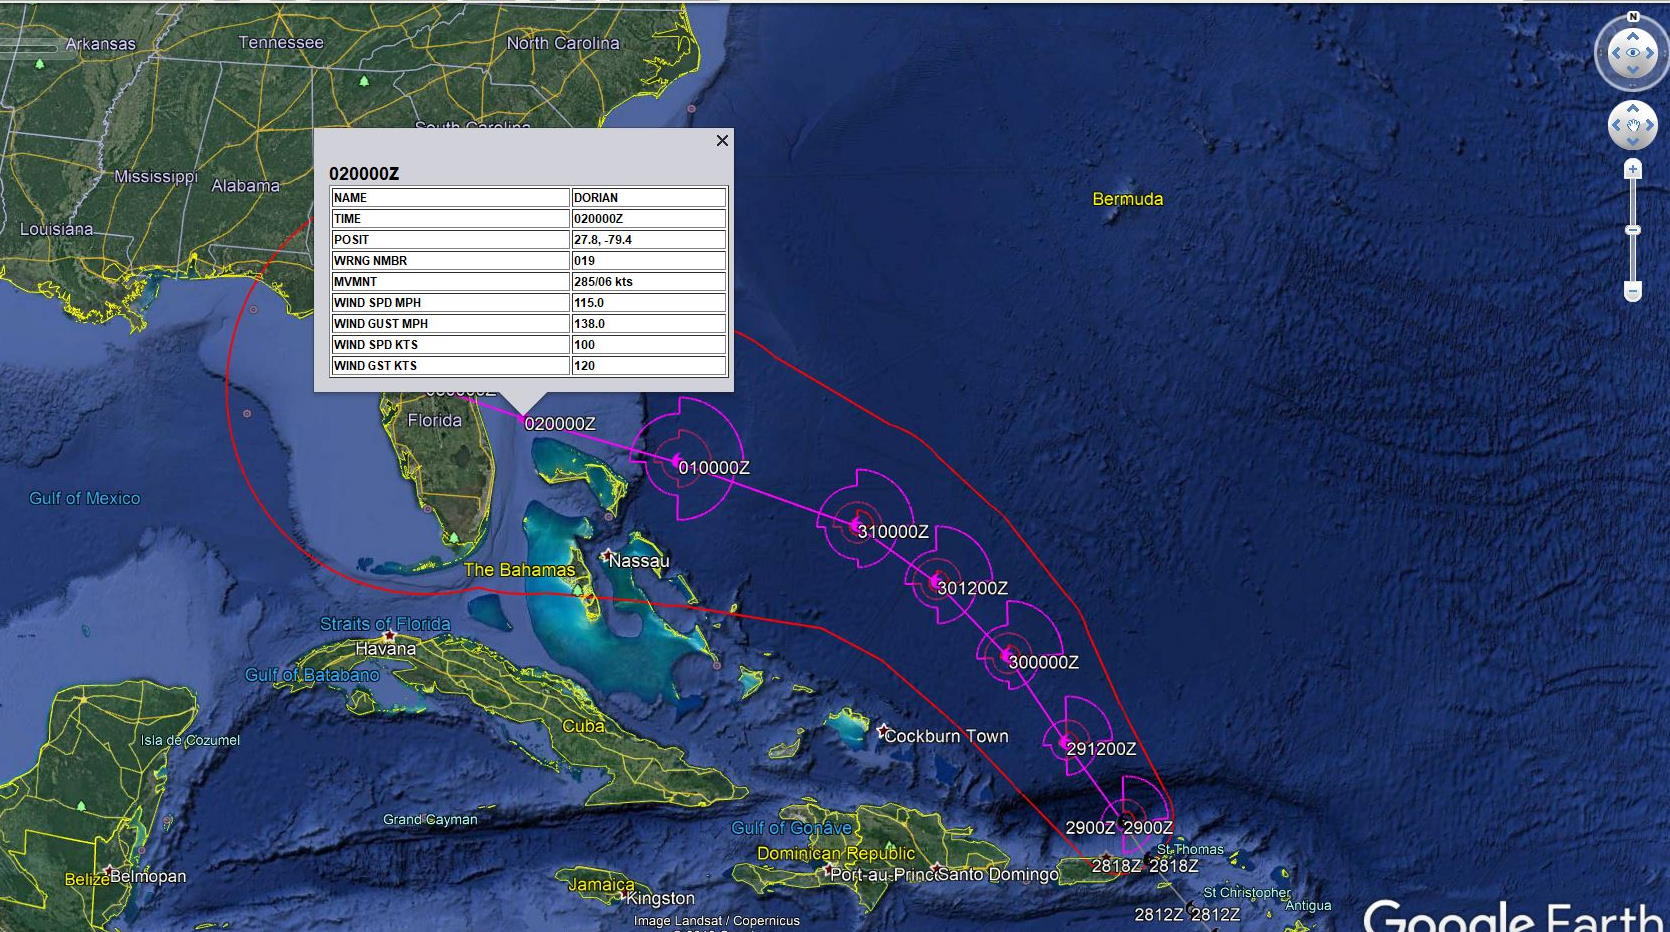 Hurricane DORIAN(05L) forecast to become a serious threat to Florida after 72h